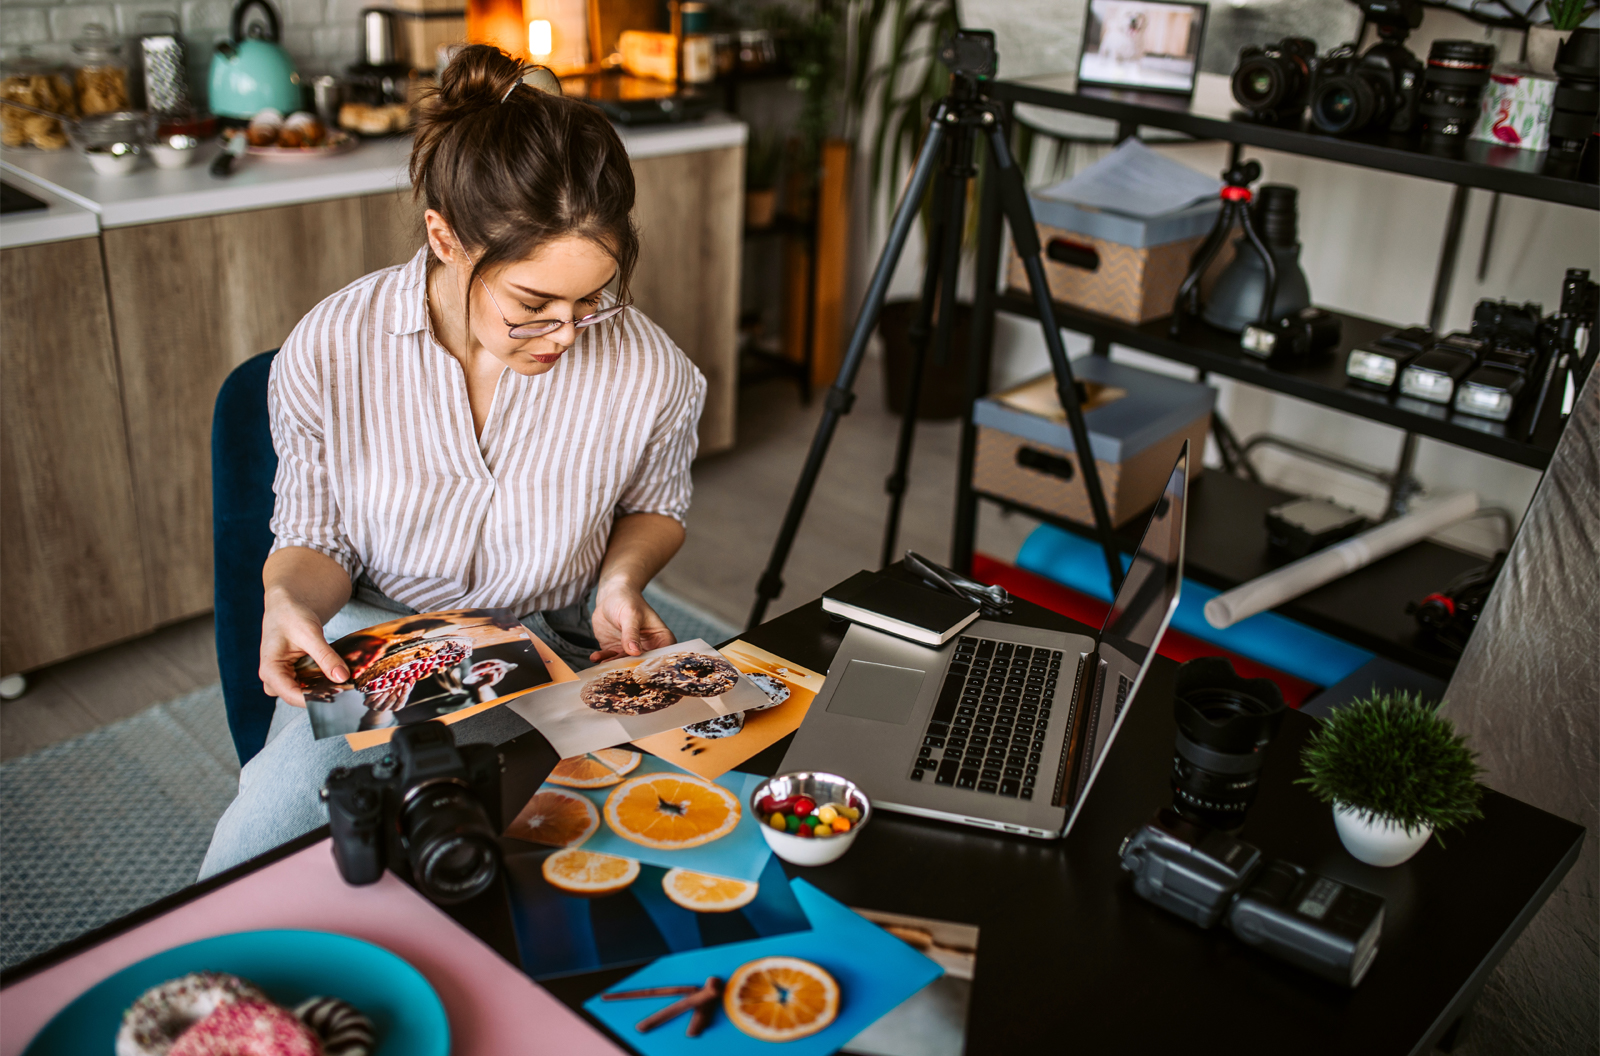 Female photographer sitting at her kitchen table reviewing and selecting images of food